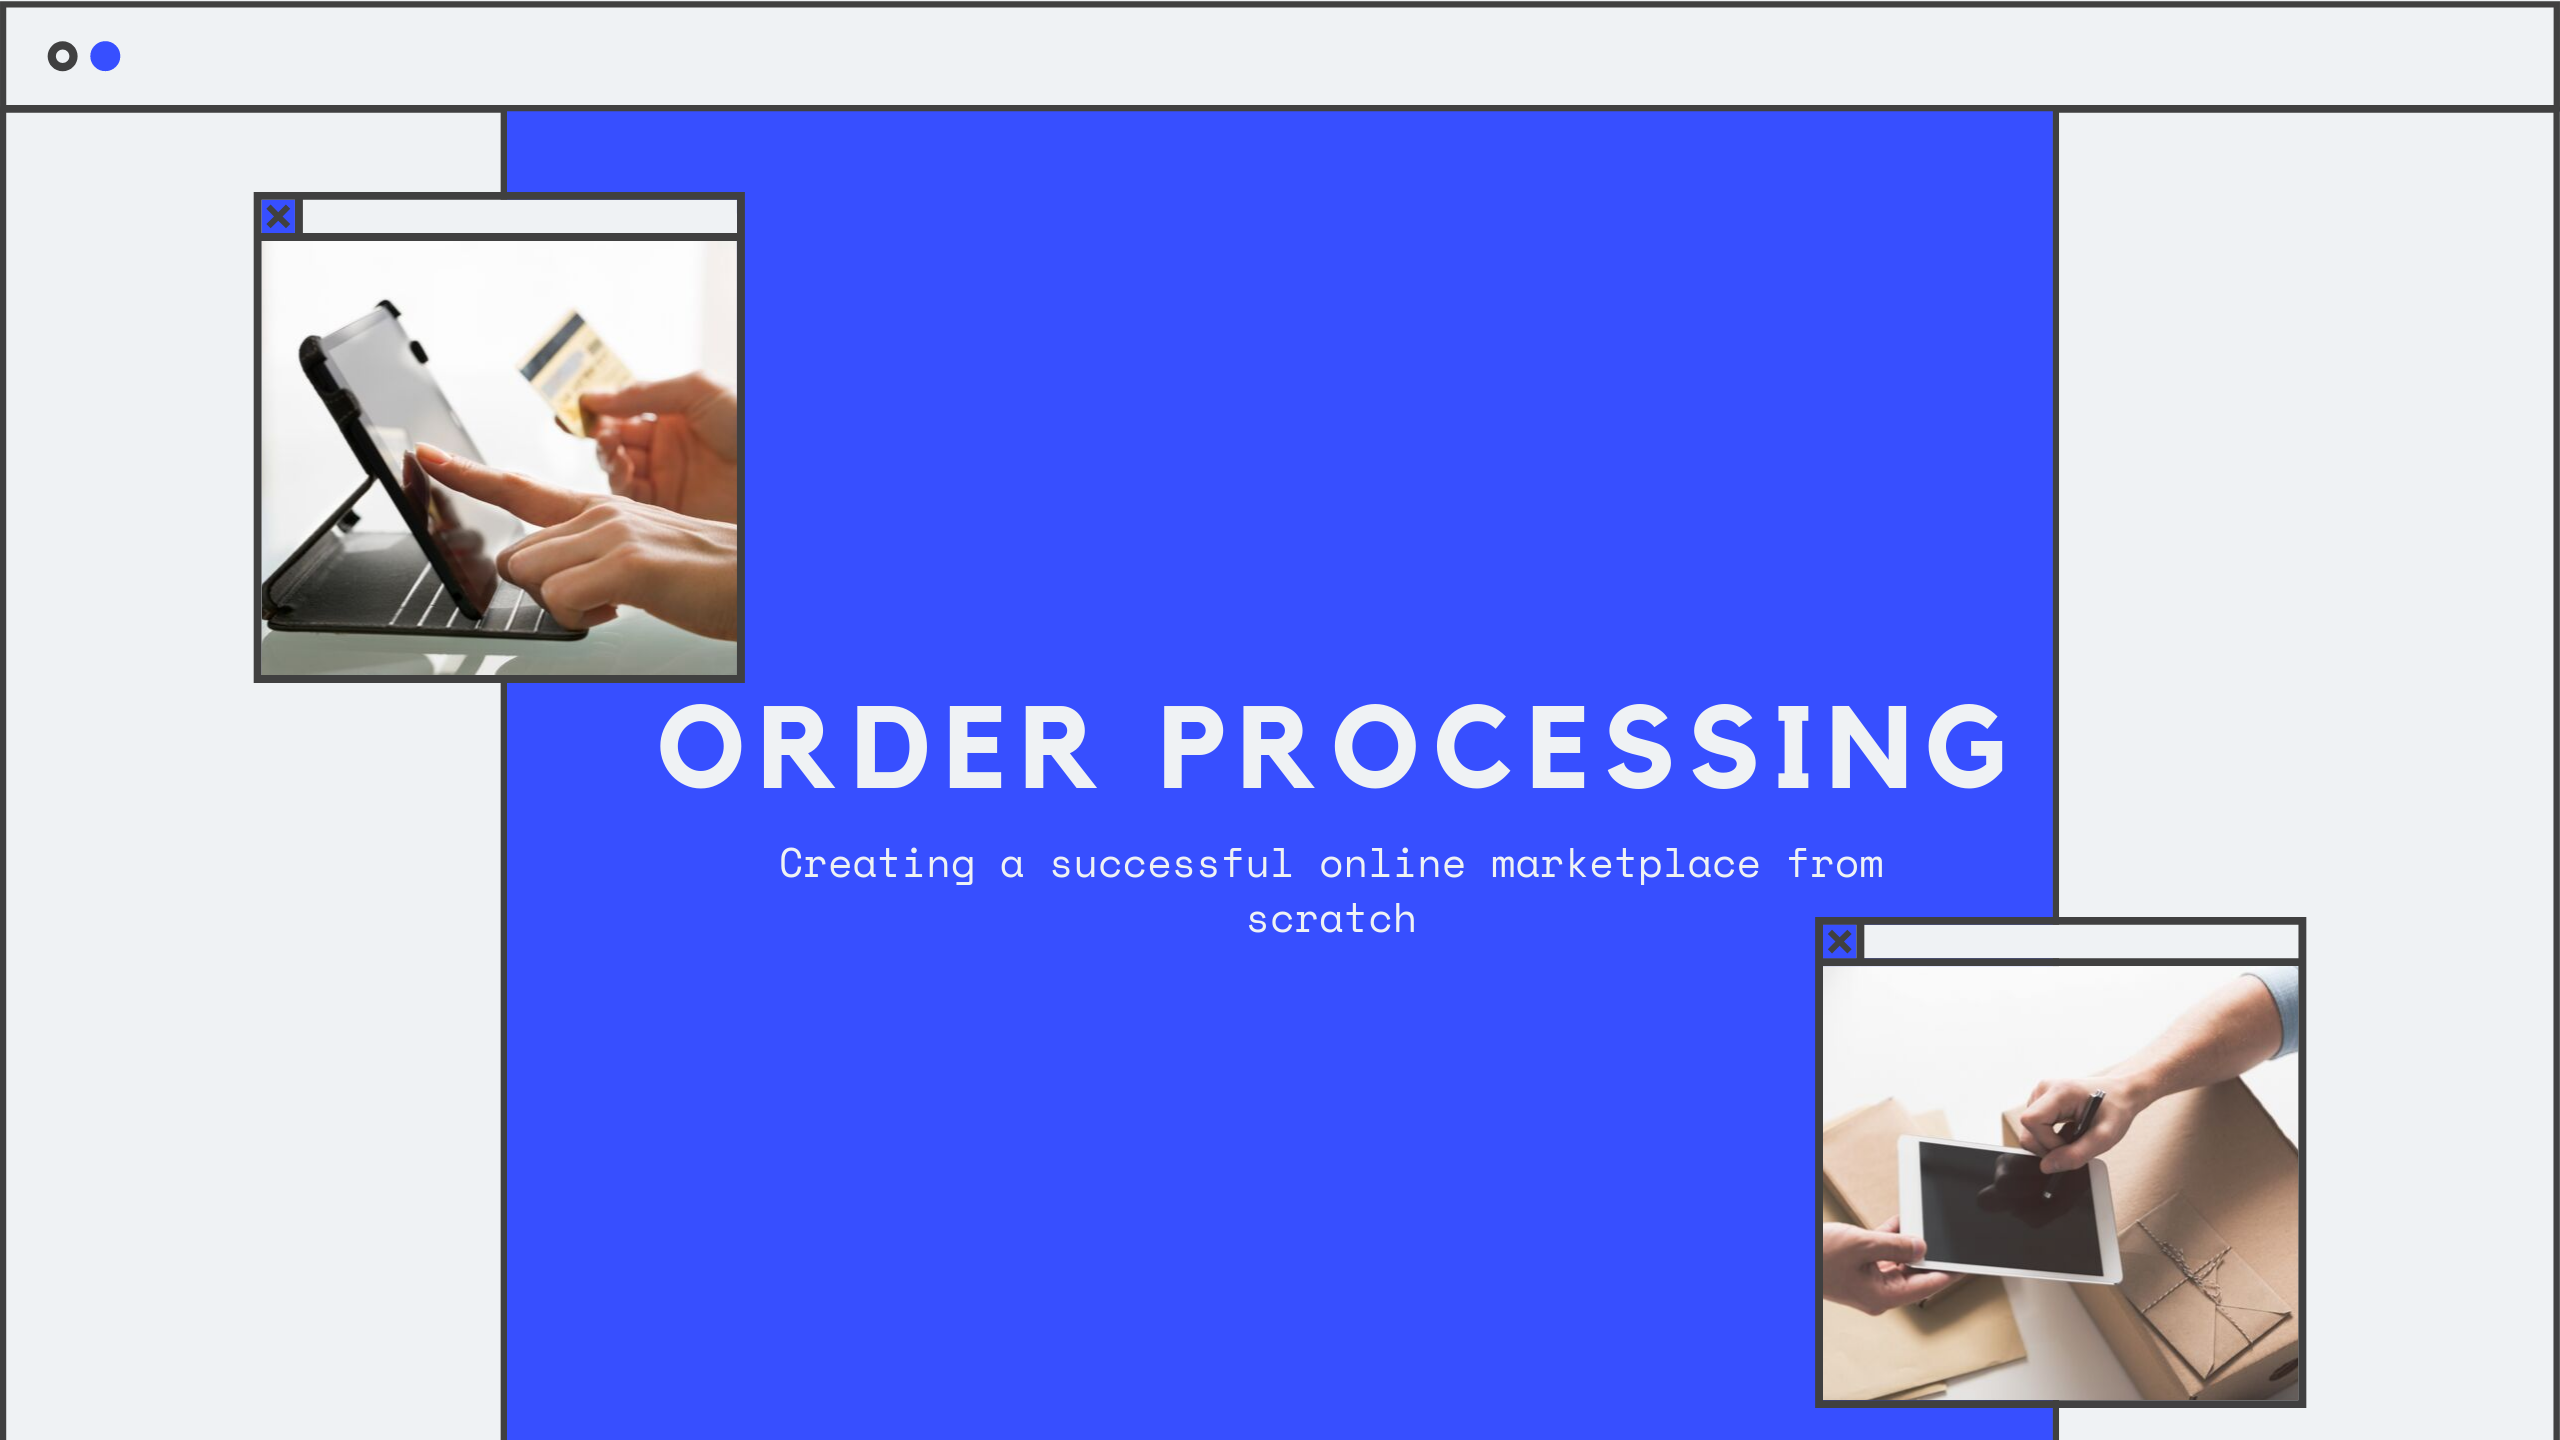 Create a successful online marketplace from scratch - order processing